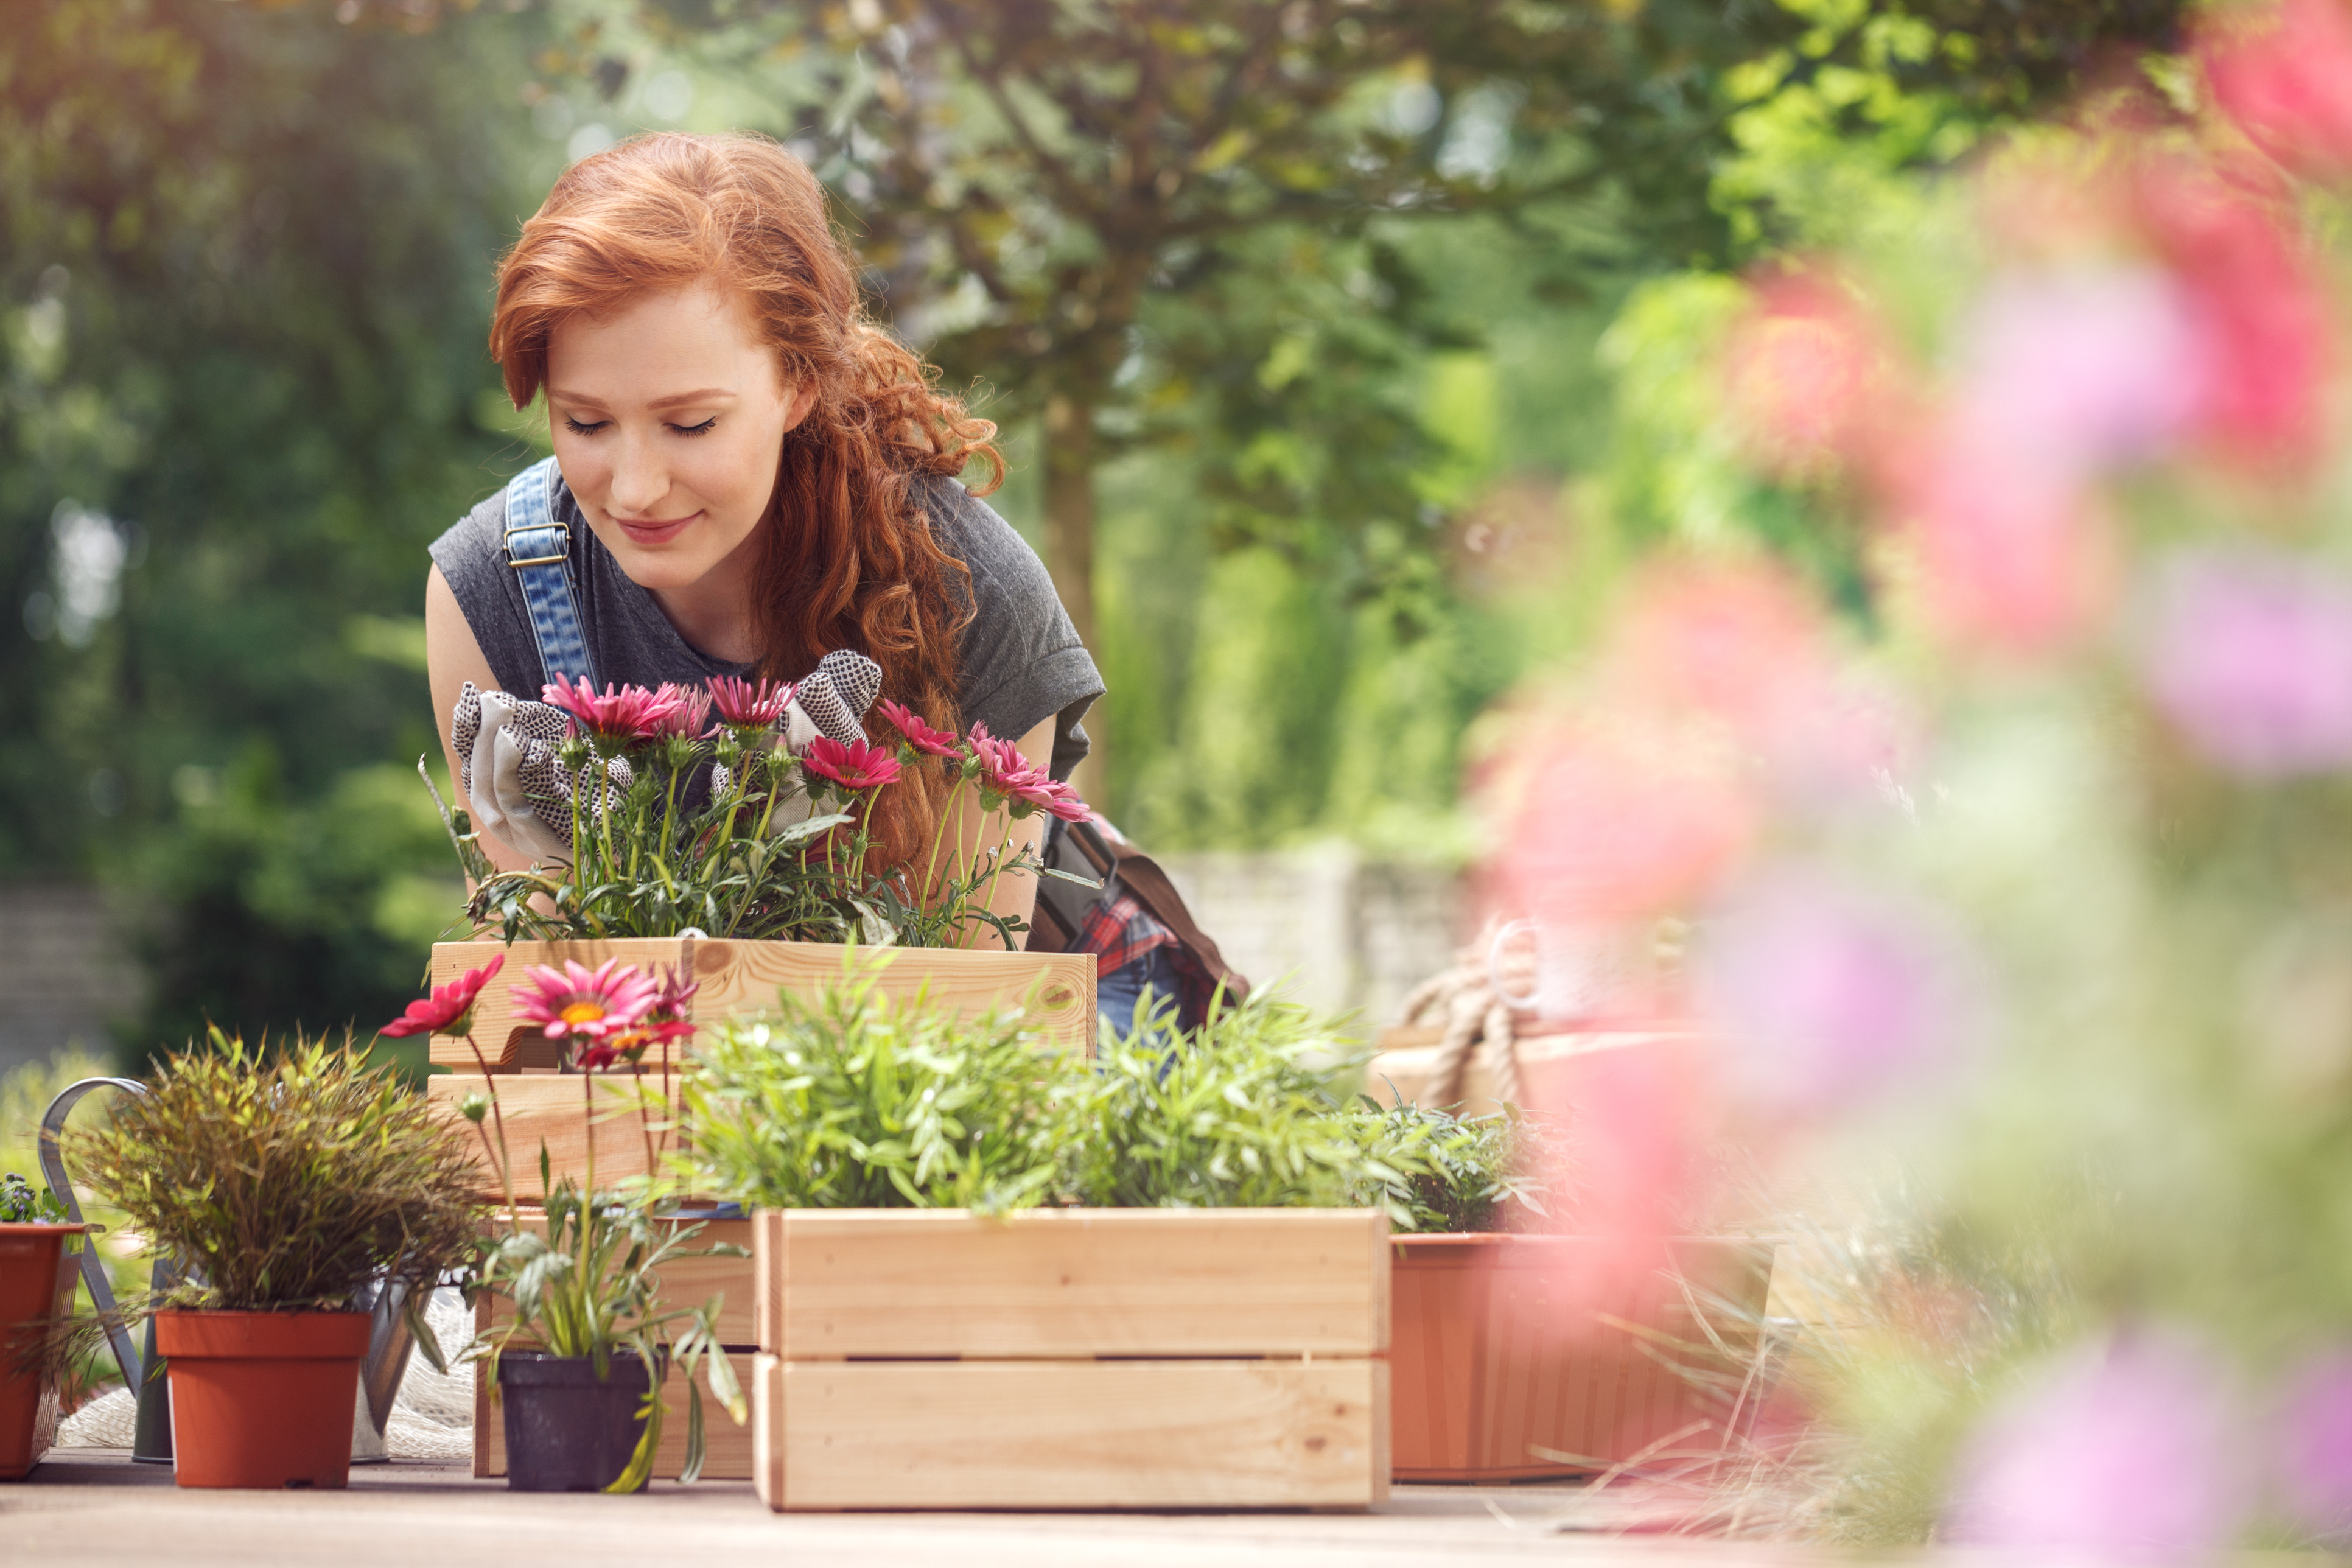 People who are not disabled can destress with gardening (iStock/PA)